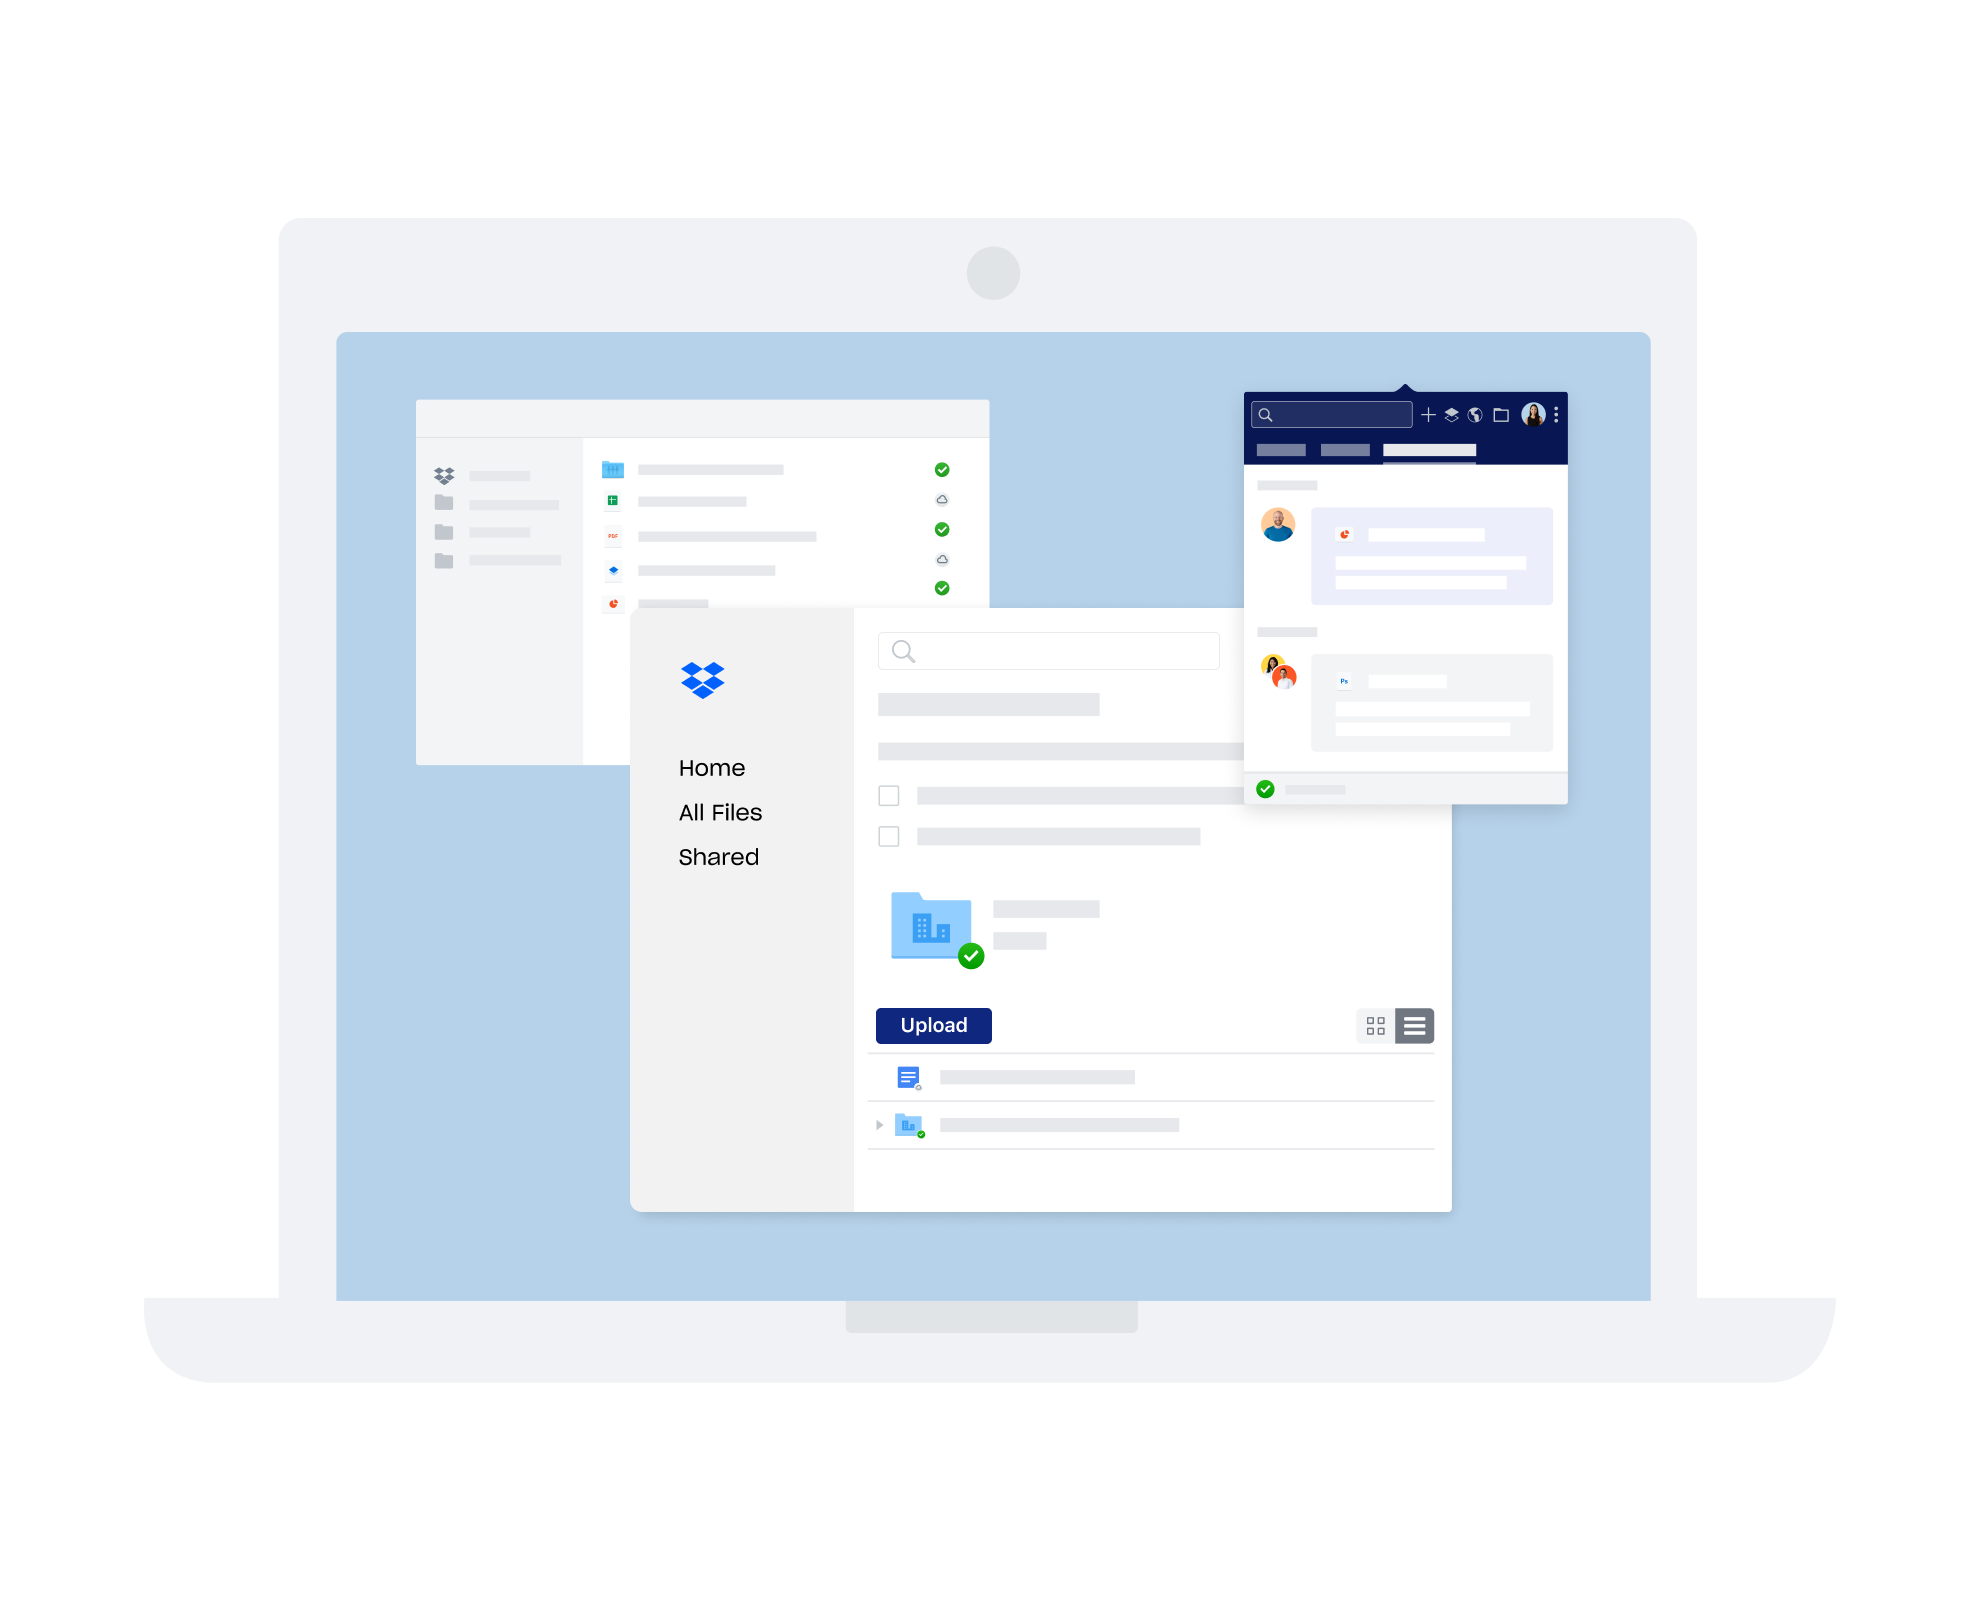 Various Dropbox interfaces for communication and collaboration